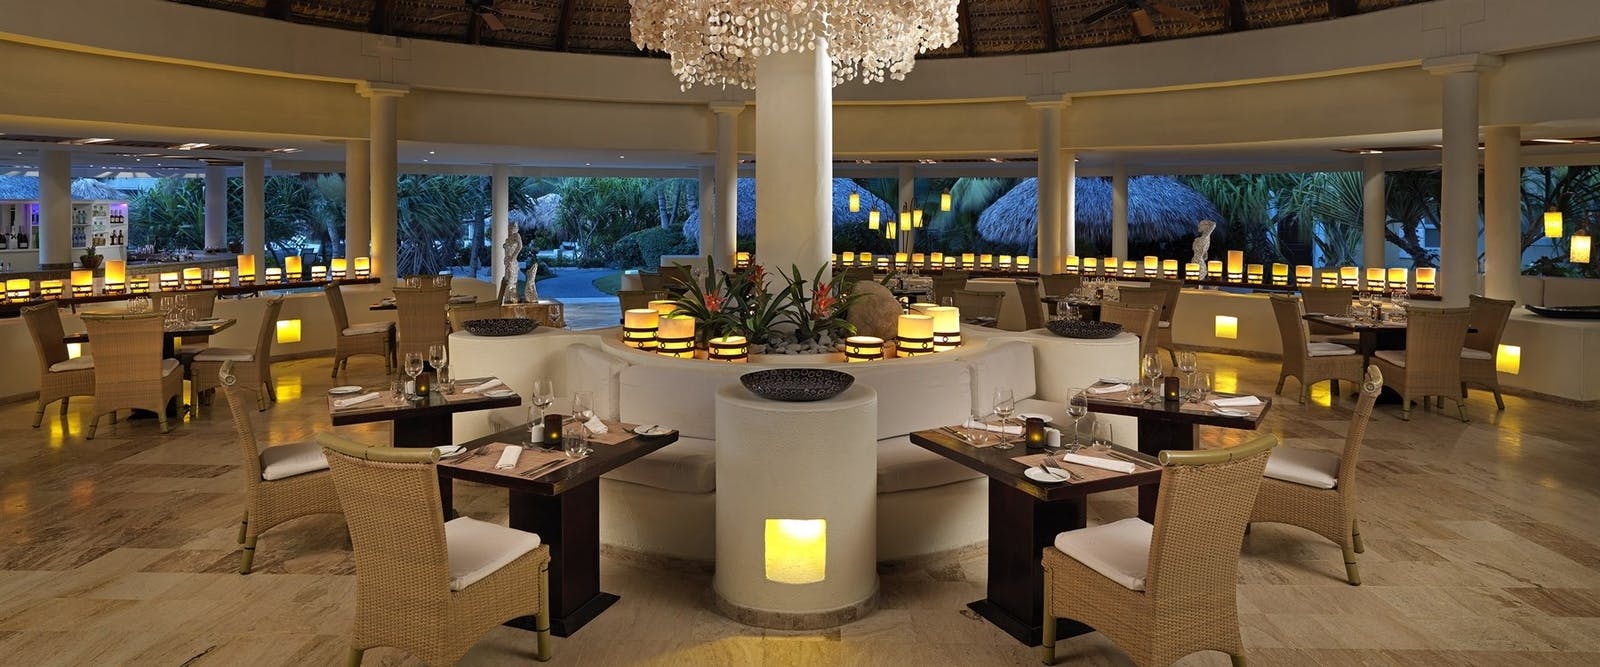 Natural Juice Bar at Paradisus Palma Real Golf & Spa Resort, Dominican Republic